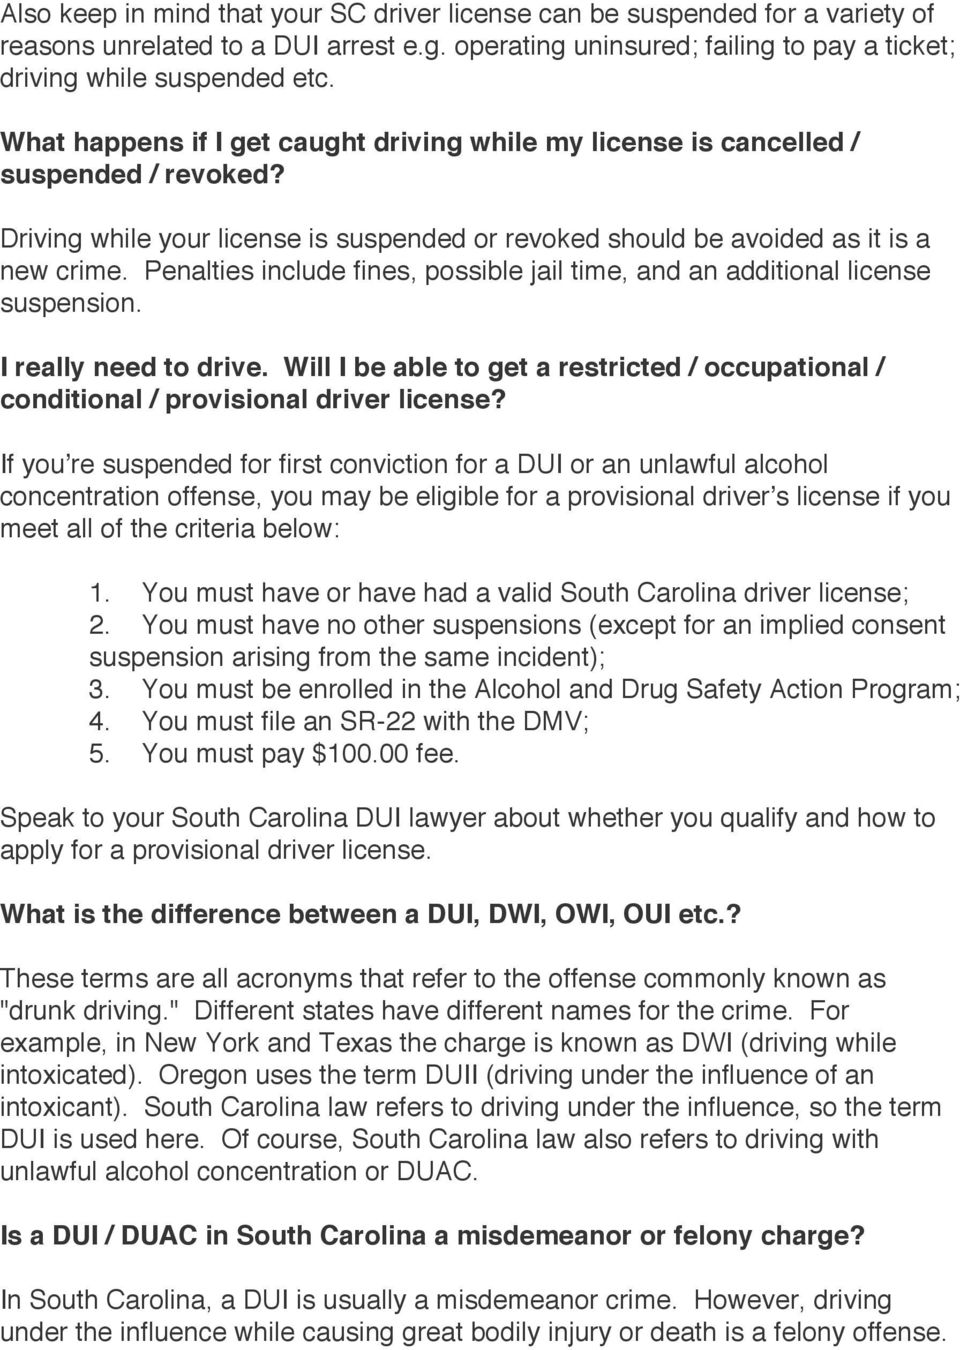 Penalties include fines, possible jail time, and an additional license suspension. I really need to drive. Will I be able to get a restricted / occupational / conditional / provisional driver license?